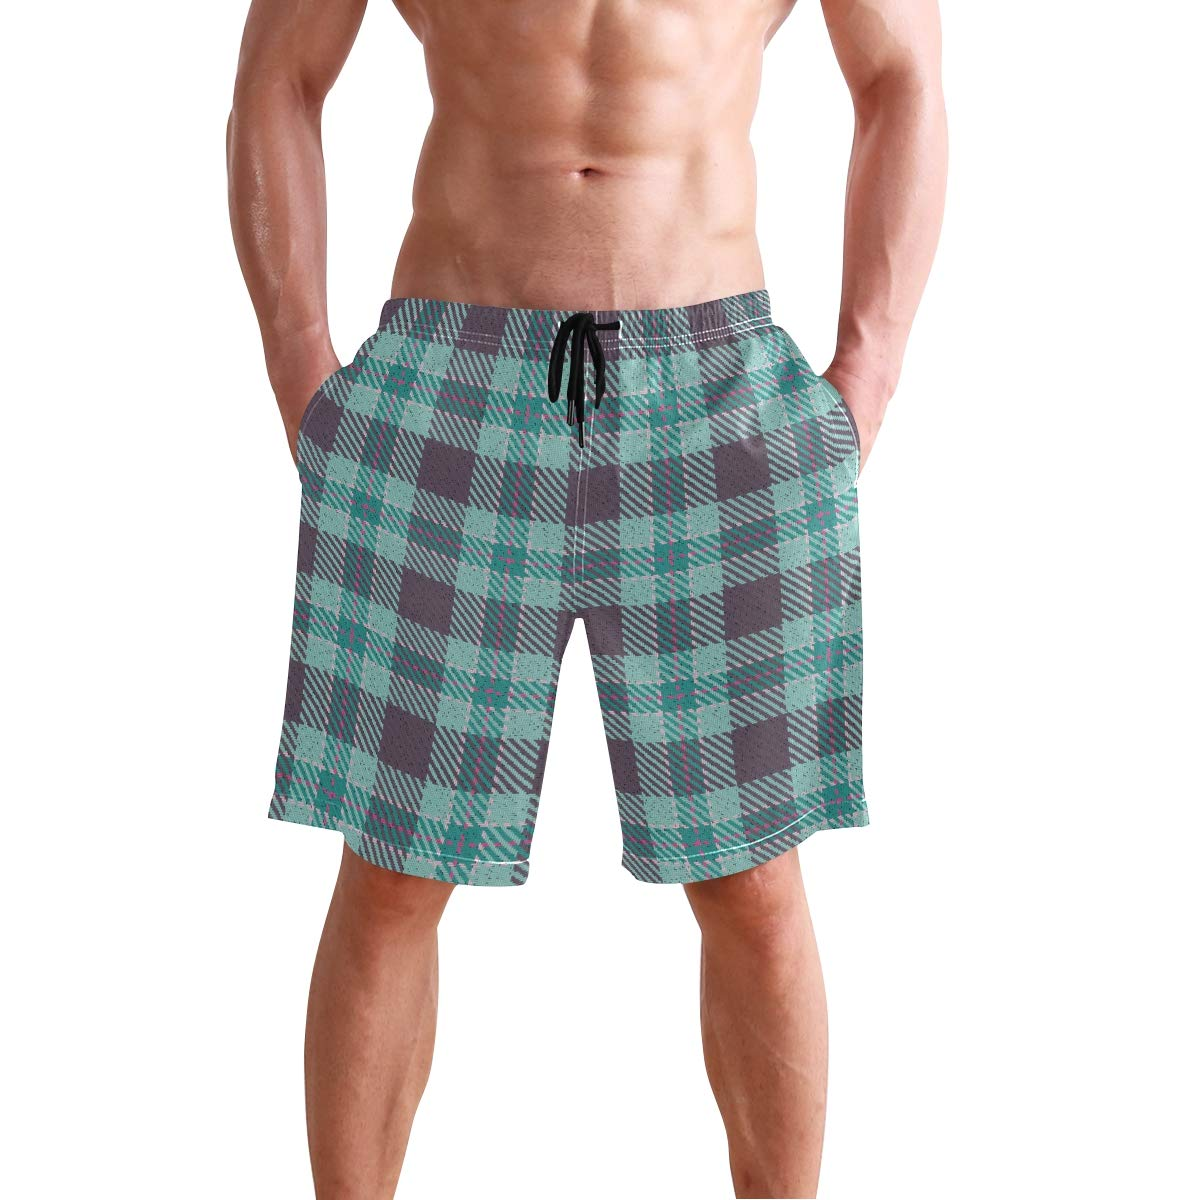 Mens Beach Swim Trunks Striped Plaid Checkered Boxer Swimsuit Underwear Board Shorts with Pocket